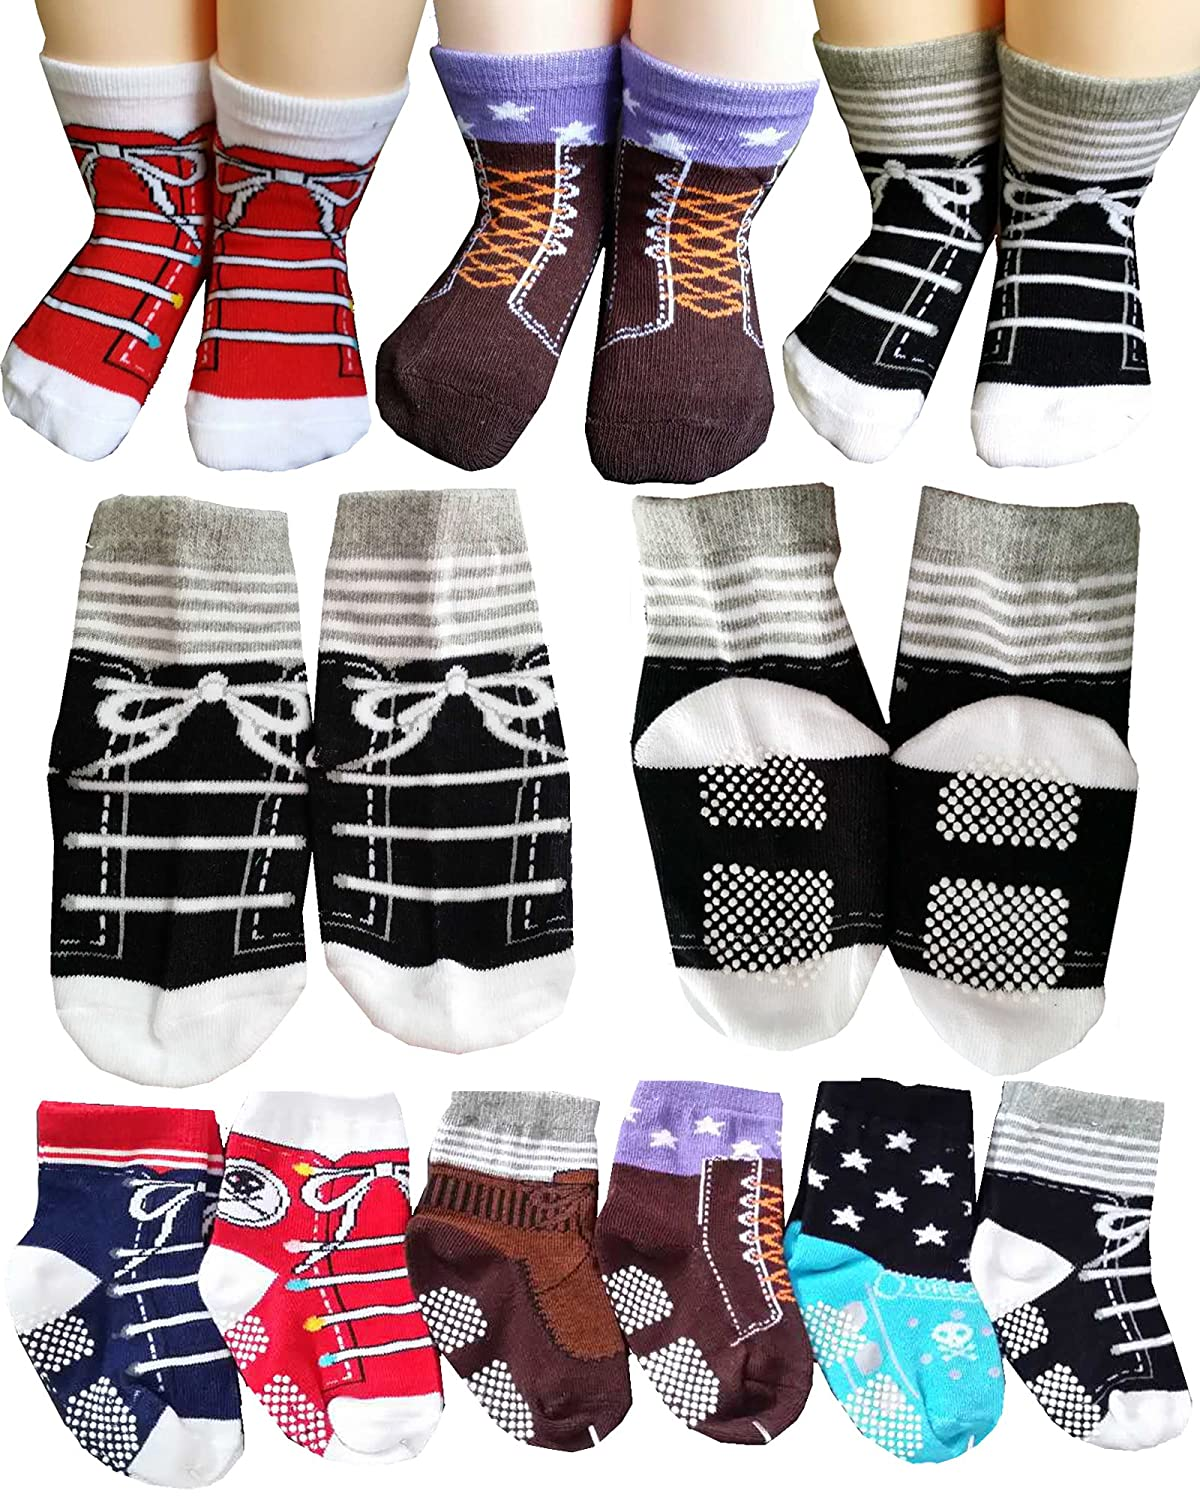 BSLINO Assorted 6 Pairs 12-24 Months Baby Boy Toddler Socks Non-Skid Anti Slip Stretch Knit Grips Cotton Shoe Socks Slippers + Thank you Card (Multicolor)